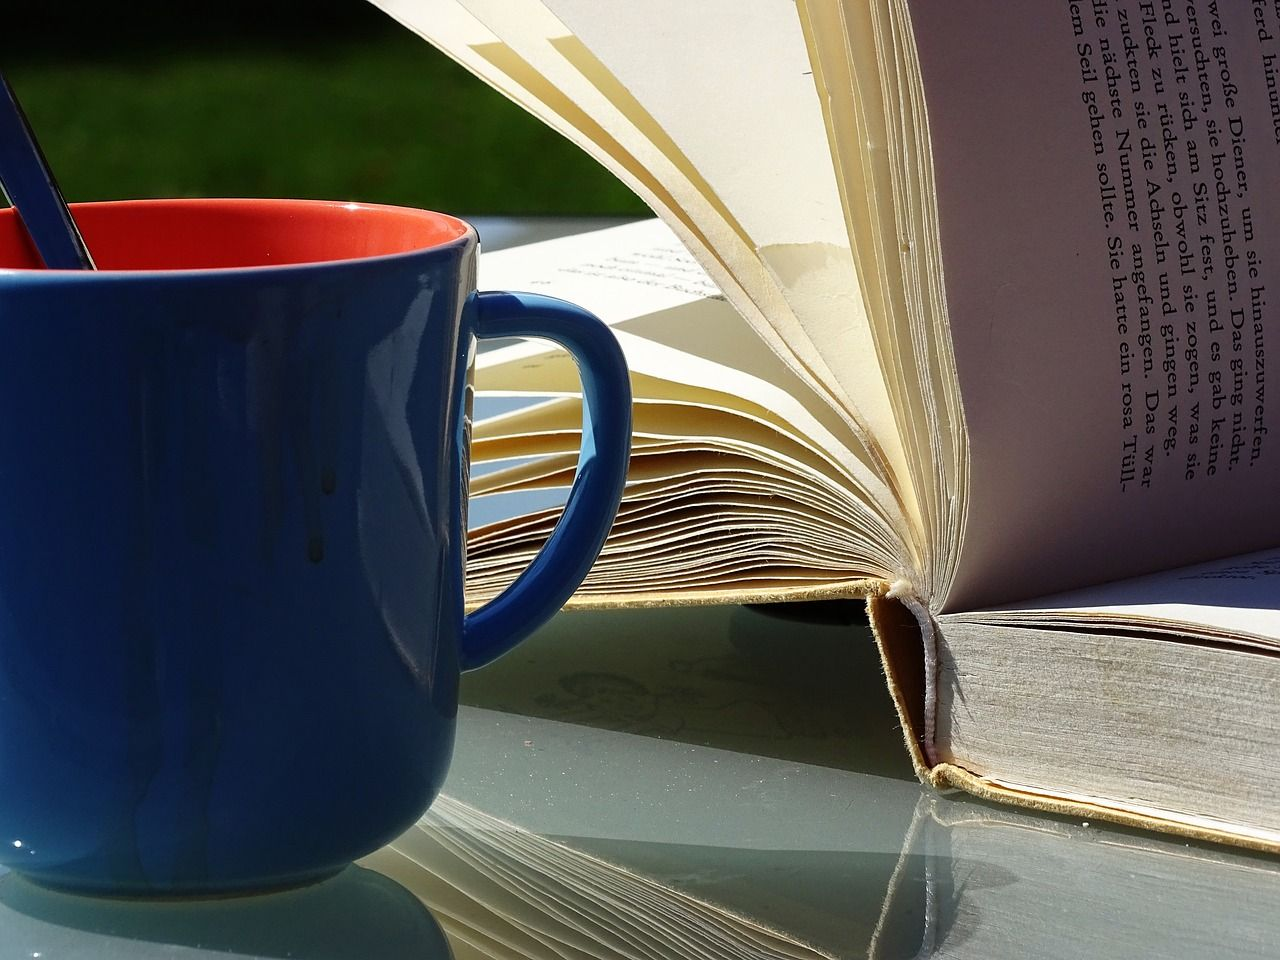 Coffee, Cup, Books, Read, Cup Of Coffee coffee, cup,